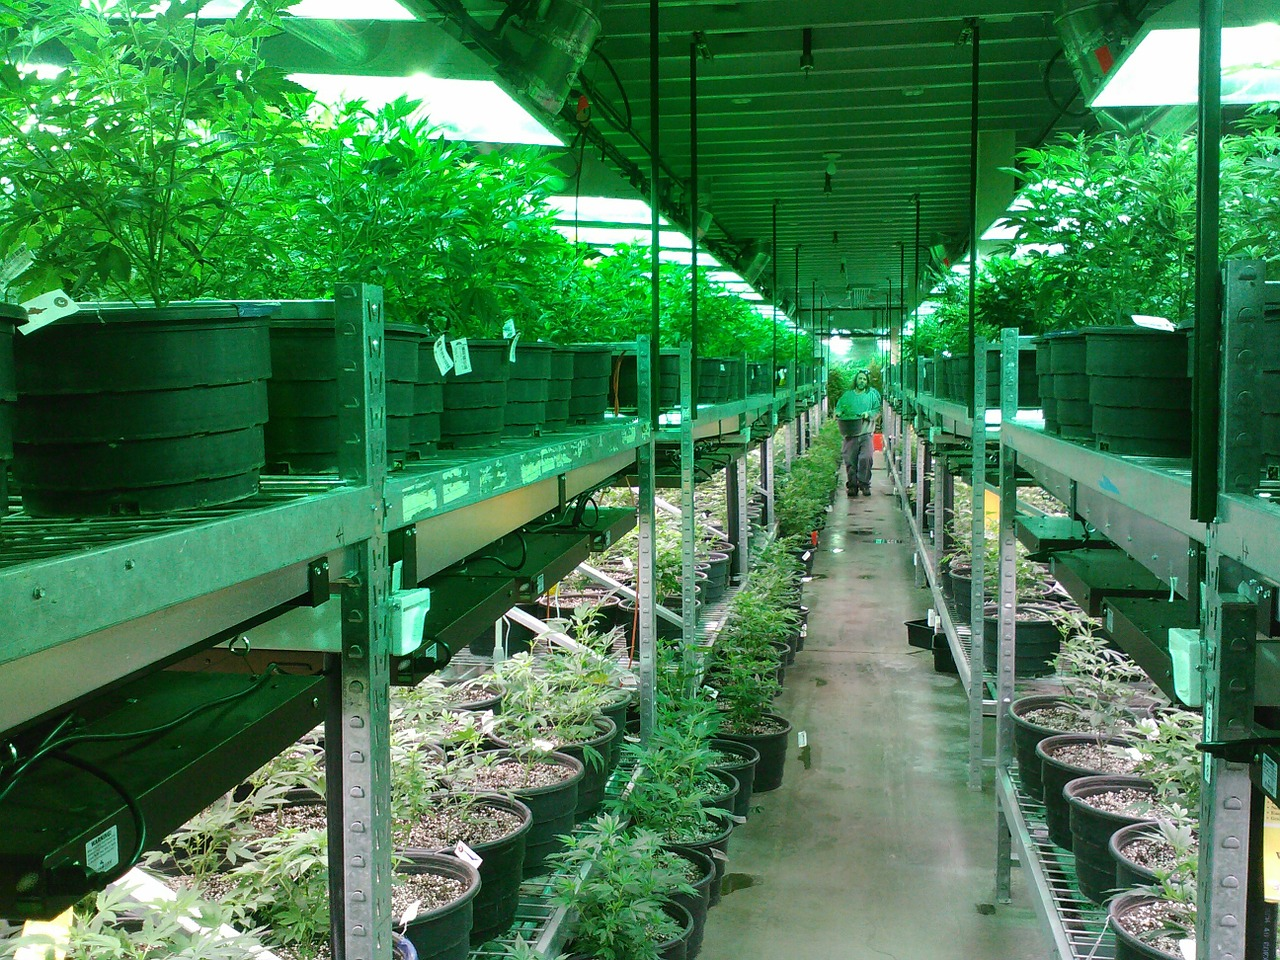 Detrimental Effects of Legalized Marijuana on Colorado Real Estate